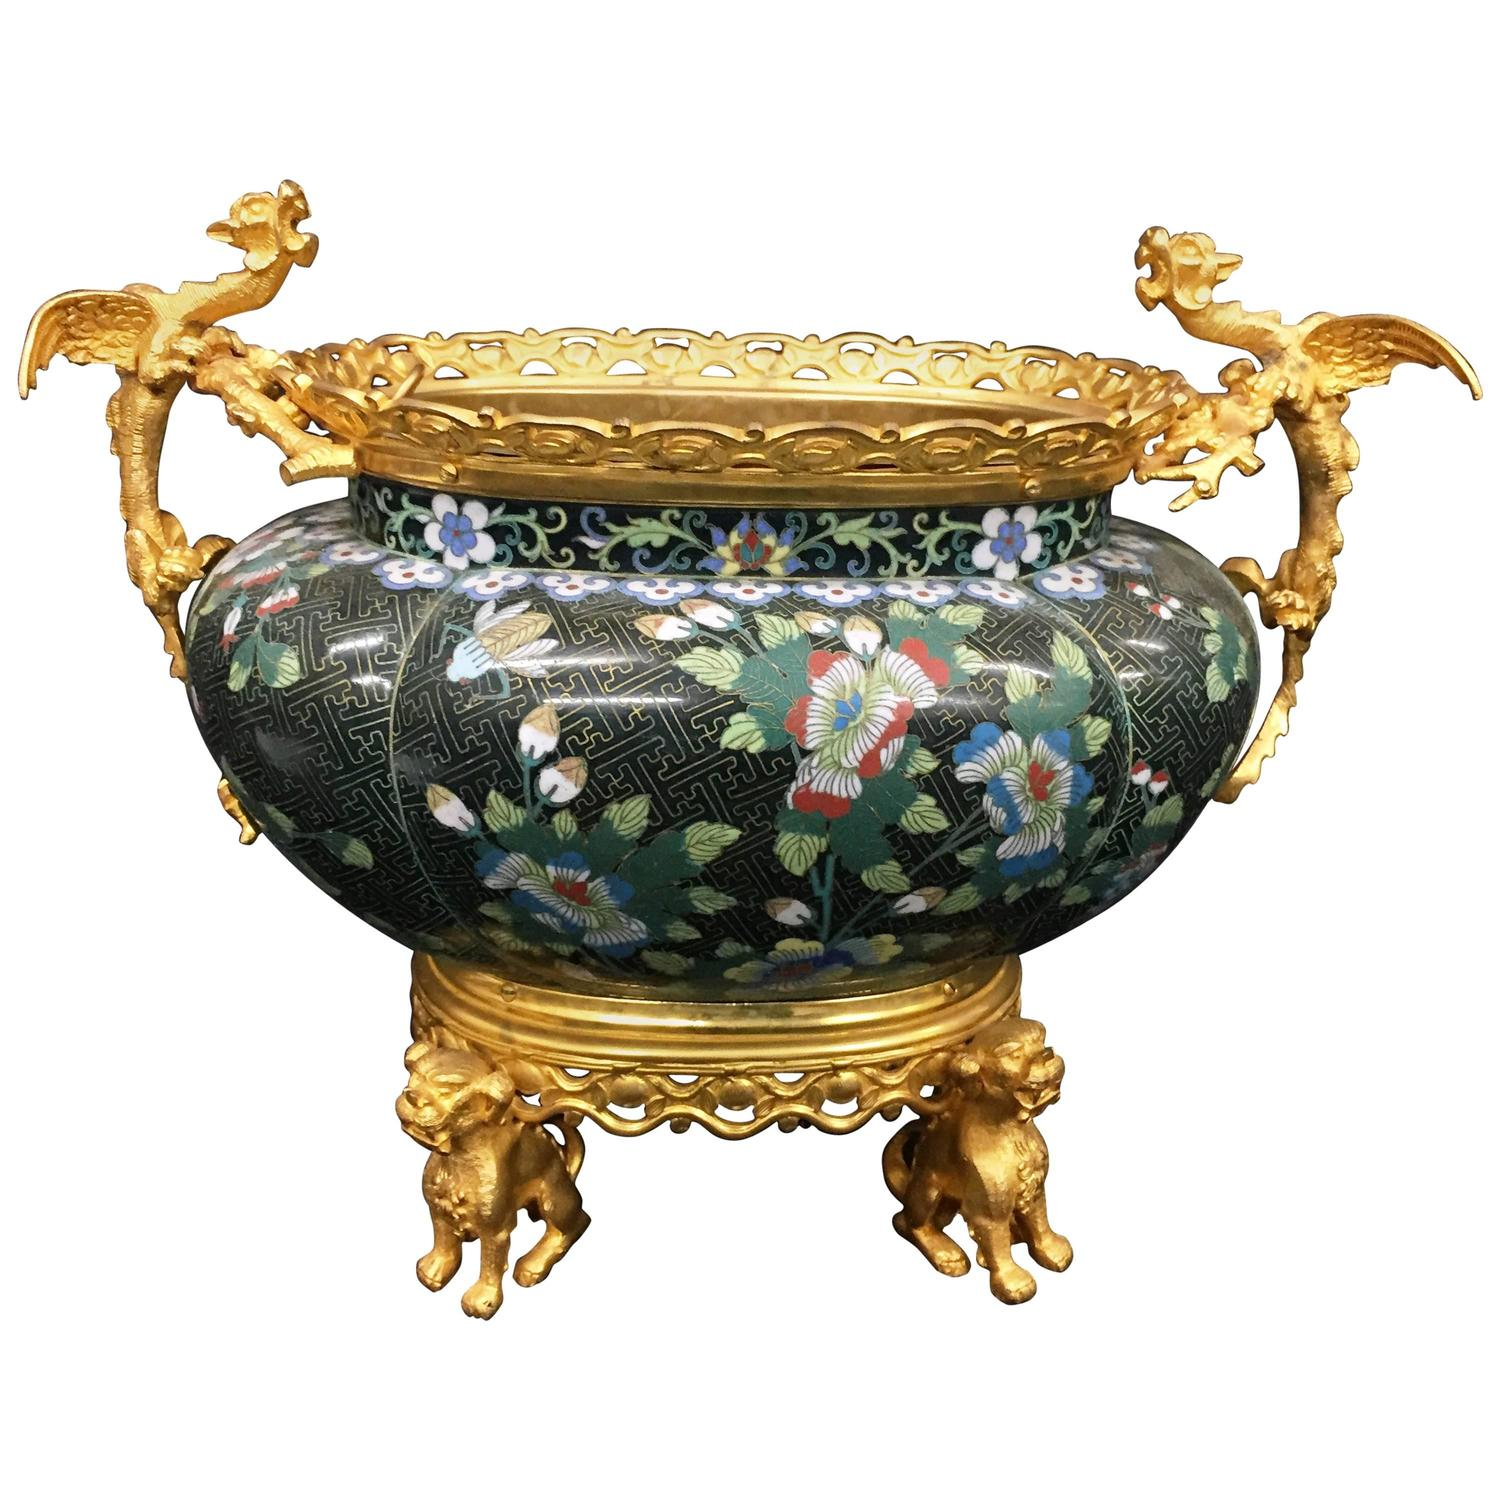 French jardiniere 19th century for sale at 1stdibs for Jardiniere decorative